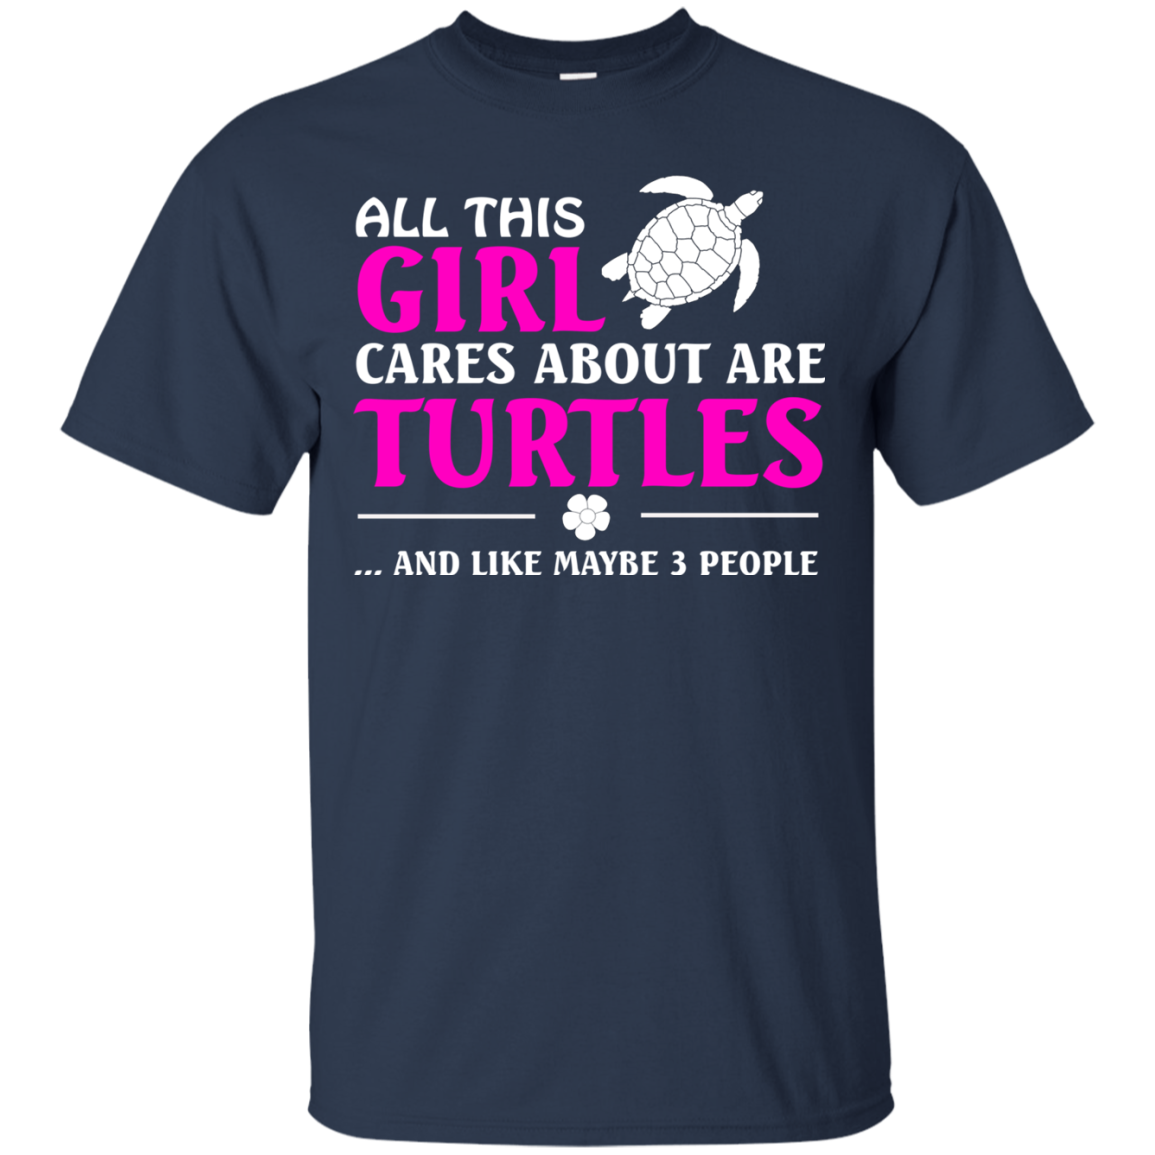 ALL THIS GIRL CARES ABOUT ARE TURTLES AND LIKE MAYBE 3 PEOPLE T SHIRT Men